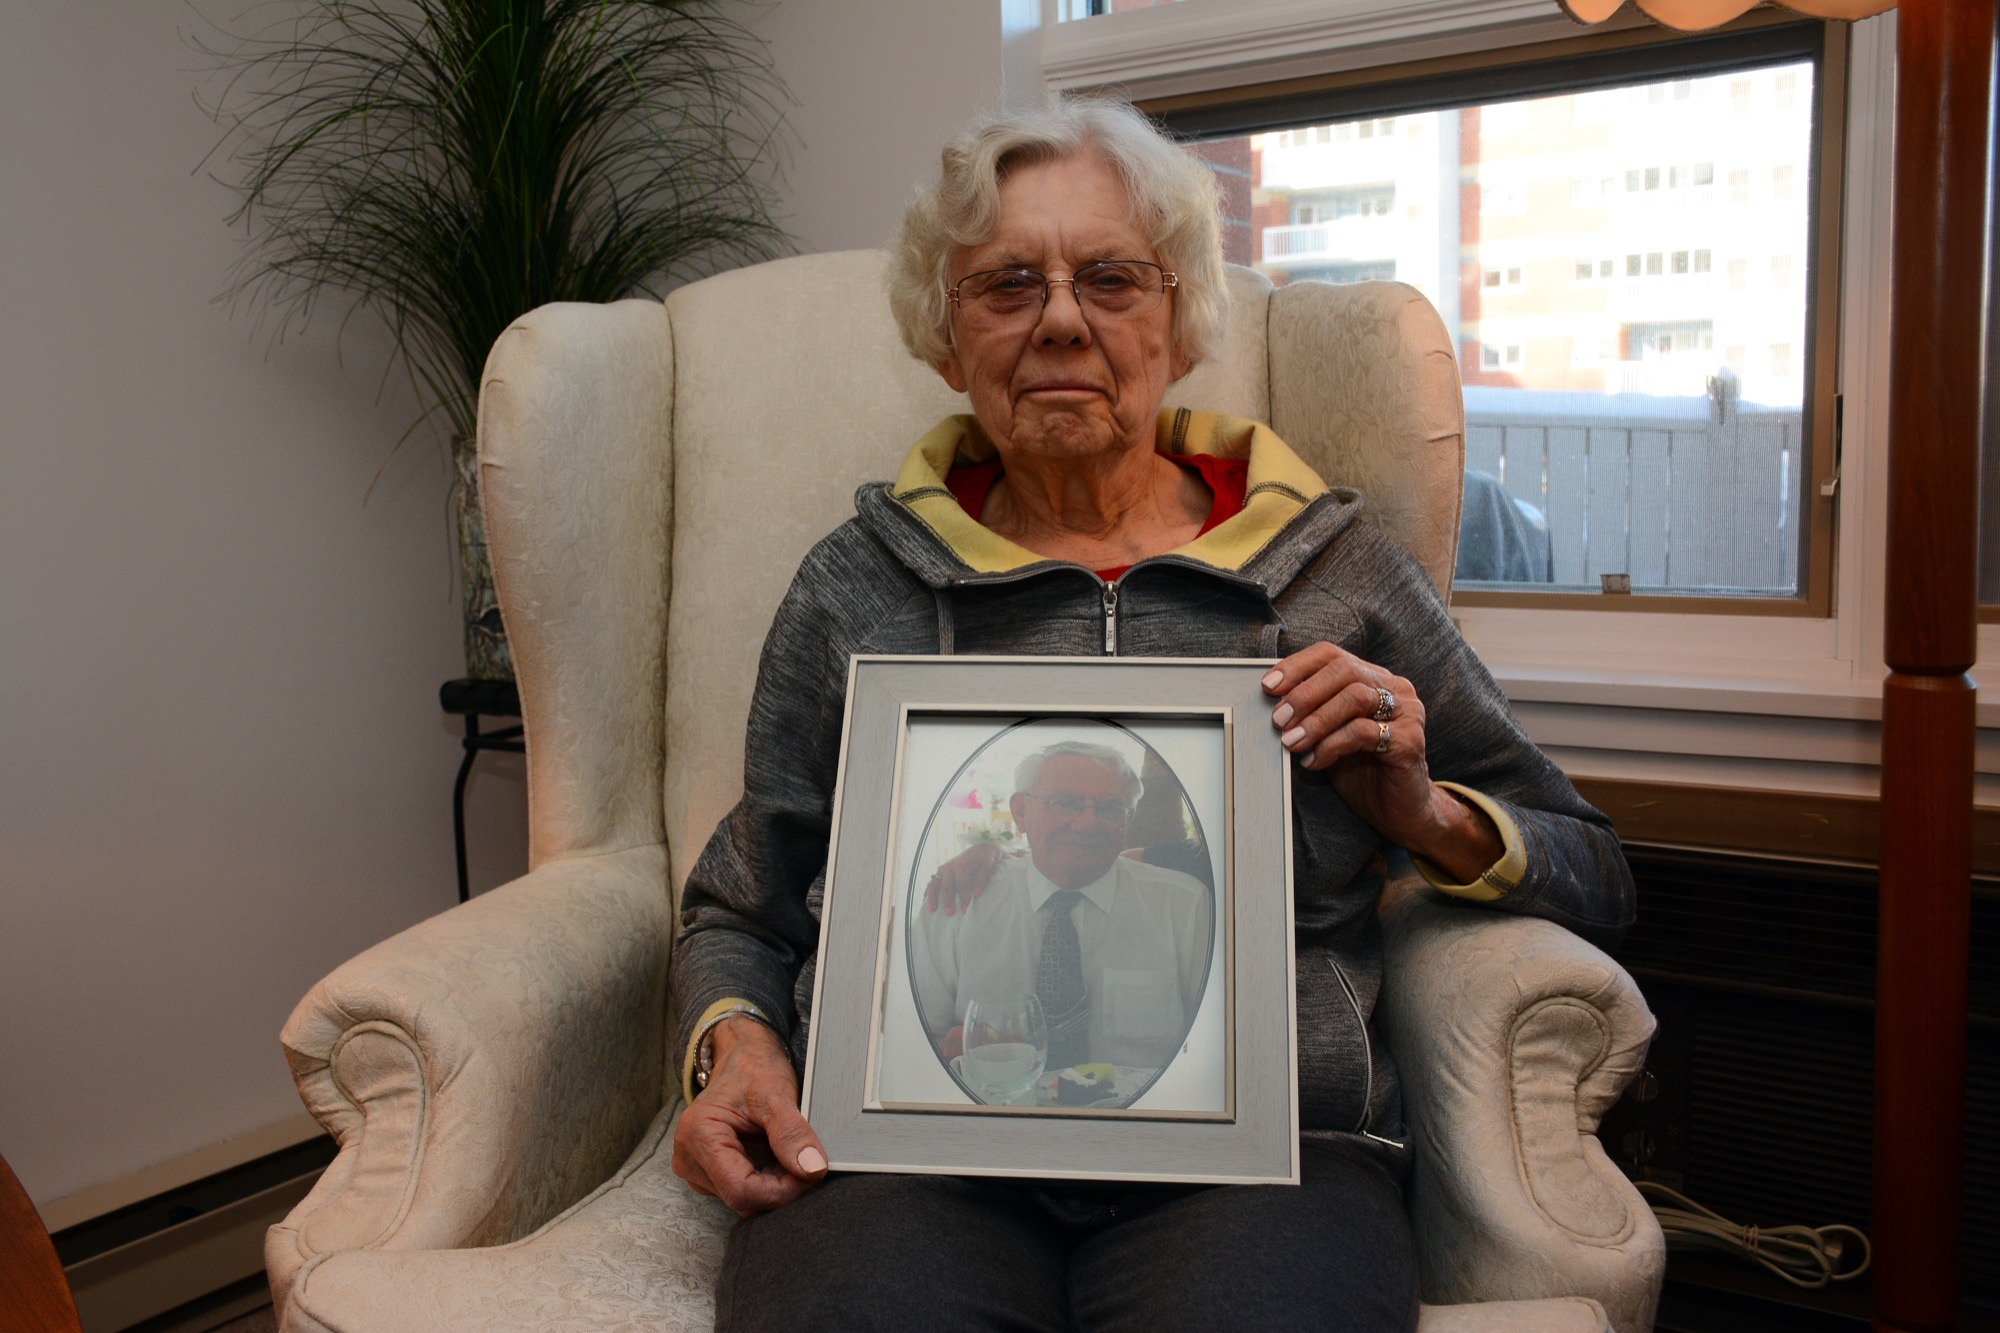 Joanne Malkowich holds a photo of her late husband, Steve, who portrayed Santa Claus for generations of Brandon children.